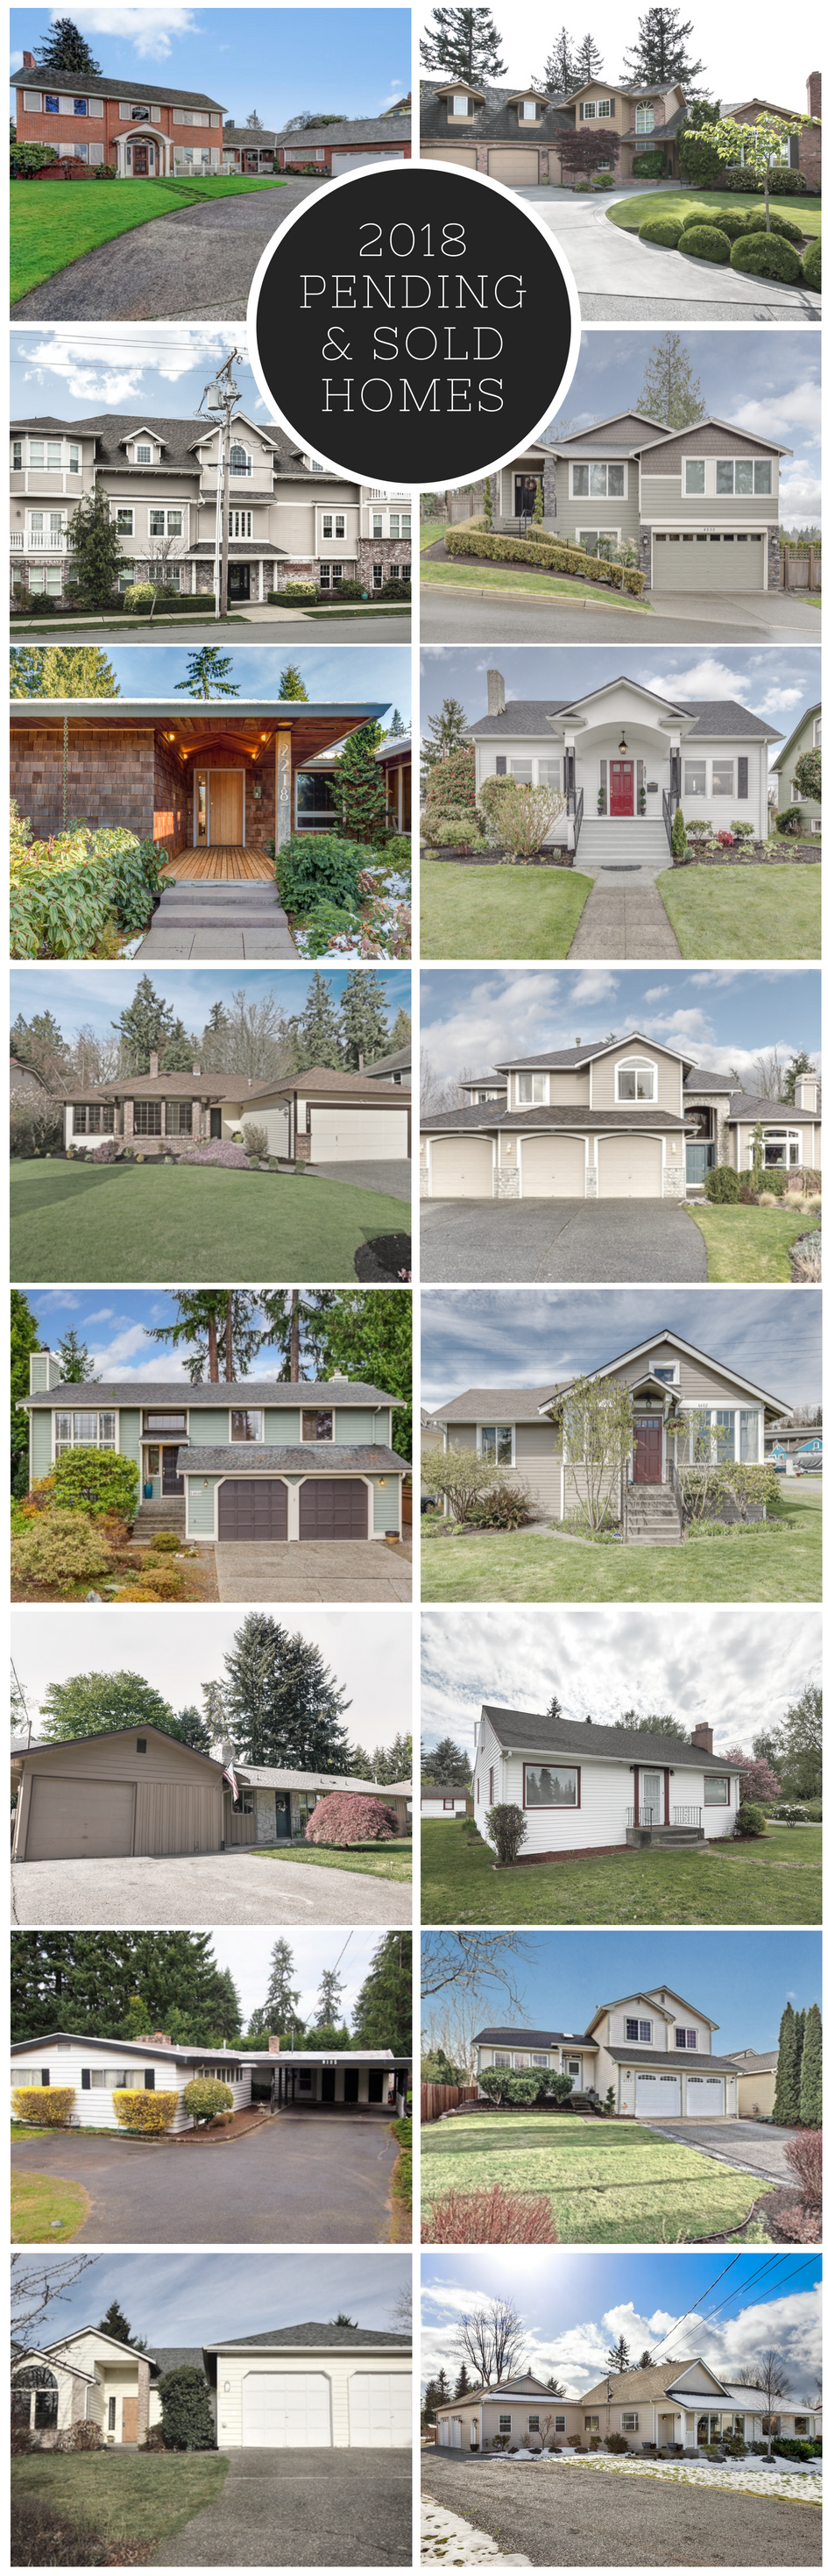 dan-gunderson-brock-reinecke-sean-straub-2018-puget-sound-sold-homes.png